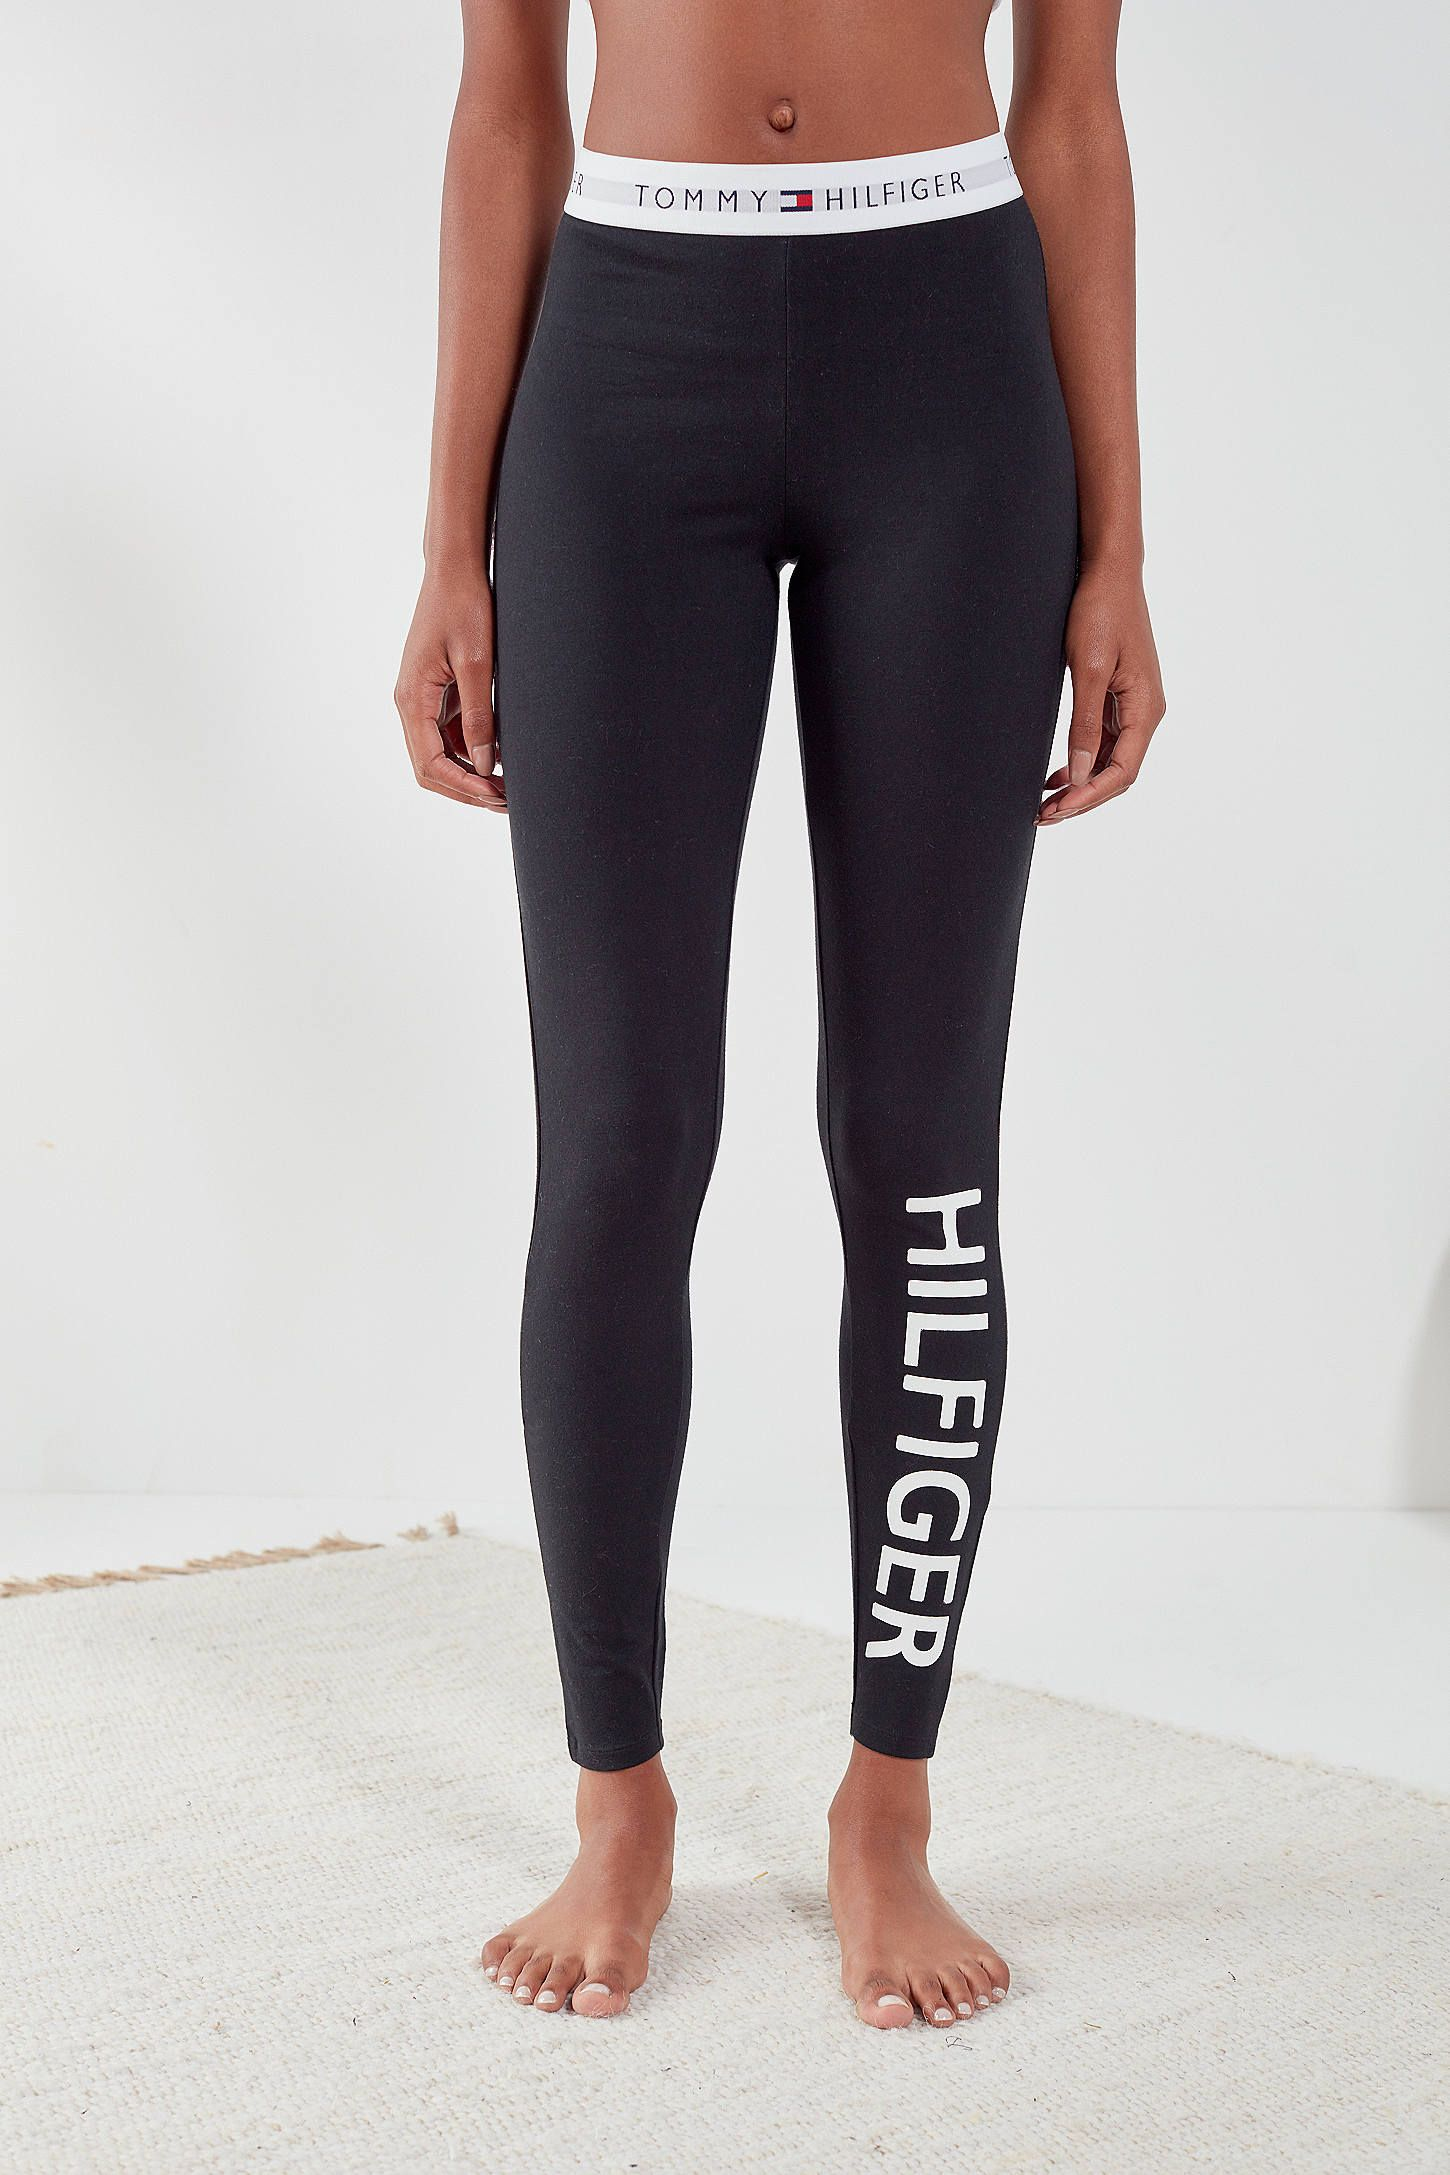 e2221faf Shop Tommy Hilfiger X UO Jersey Legging at Urban Outfitters today. We carry  all the latest styles, colors and brands for you to choose from right here.